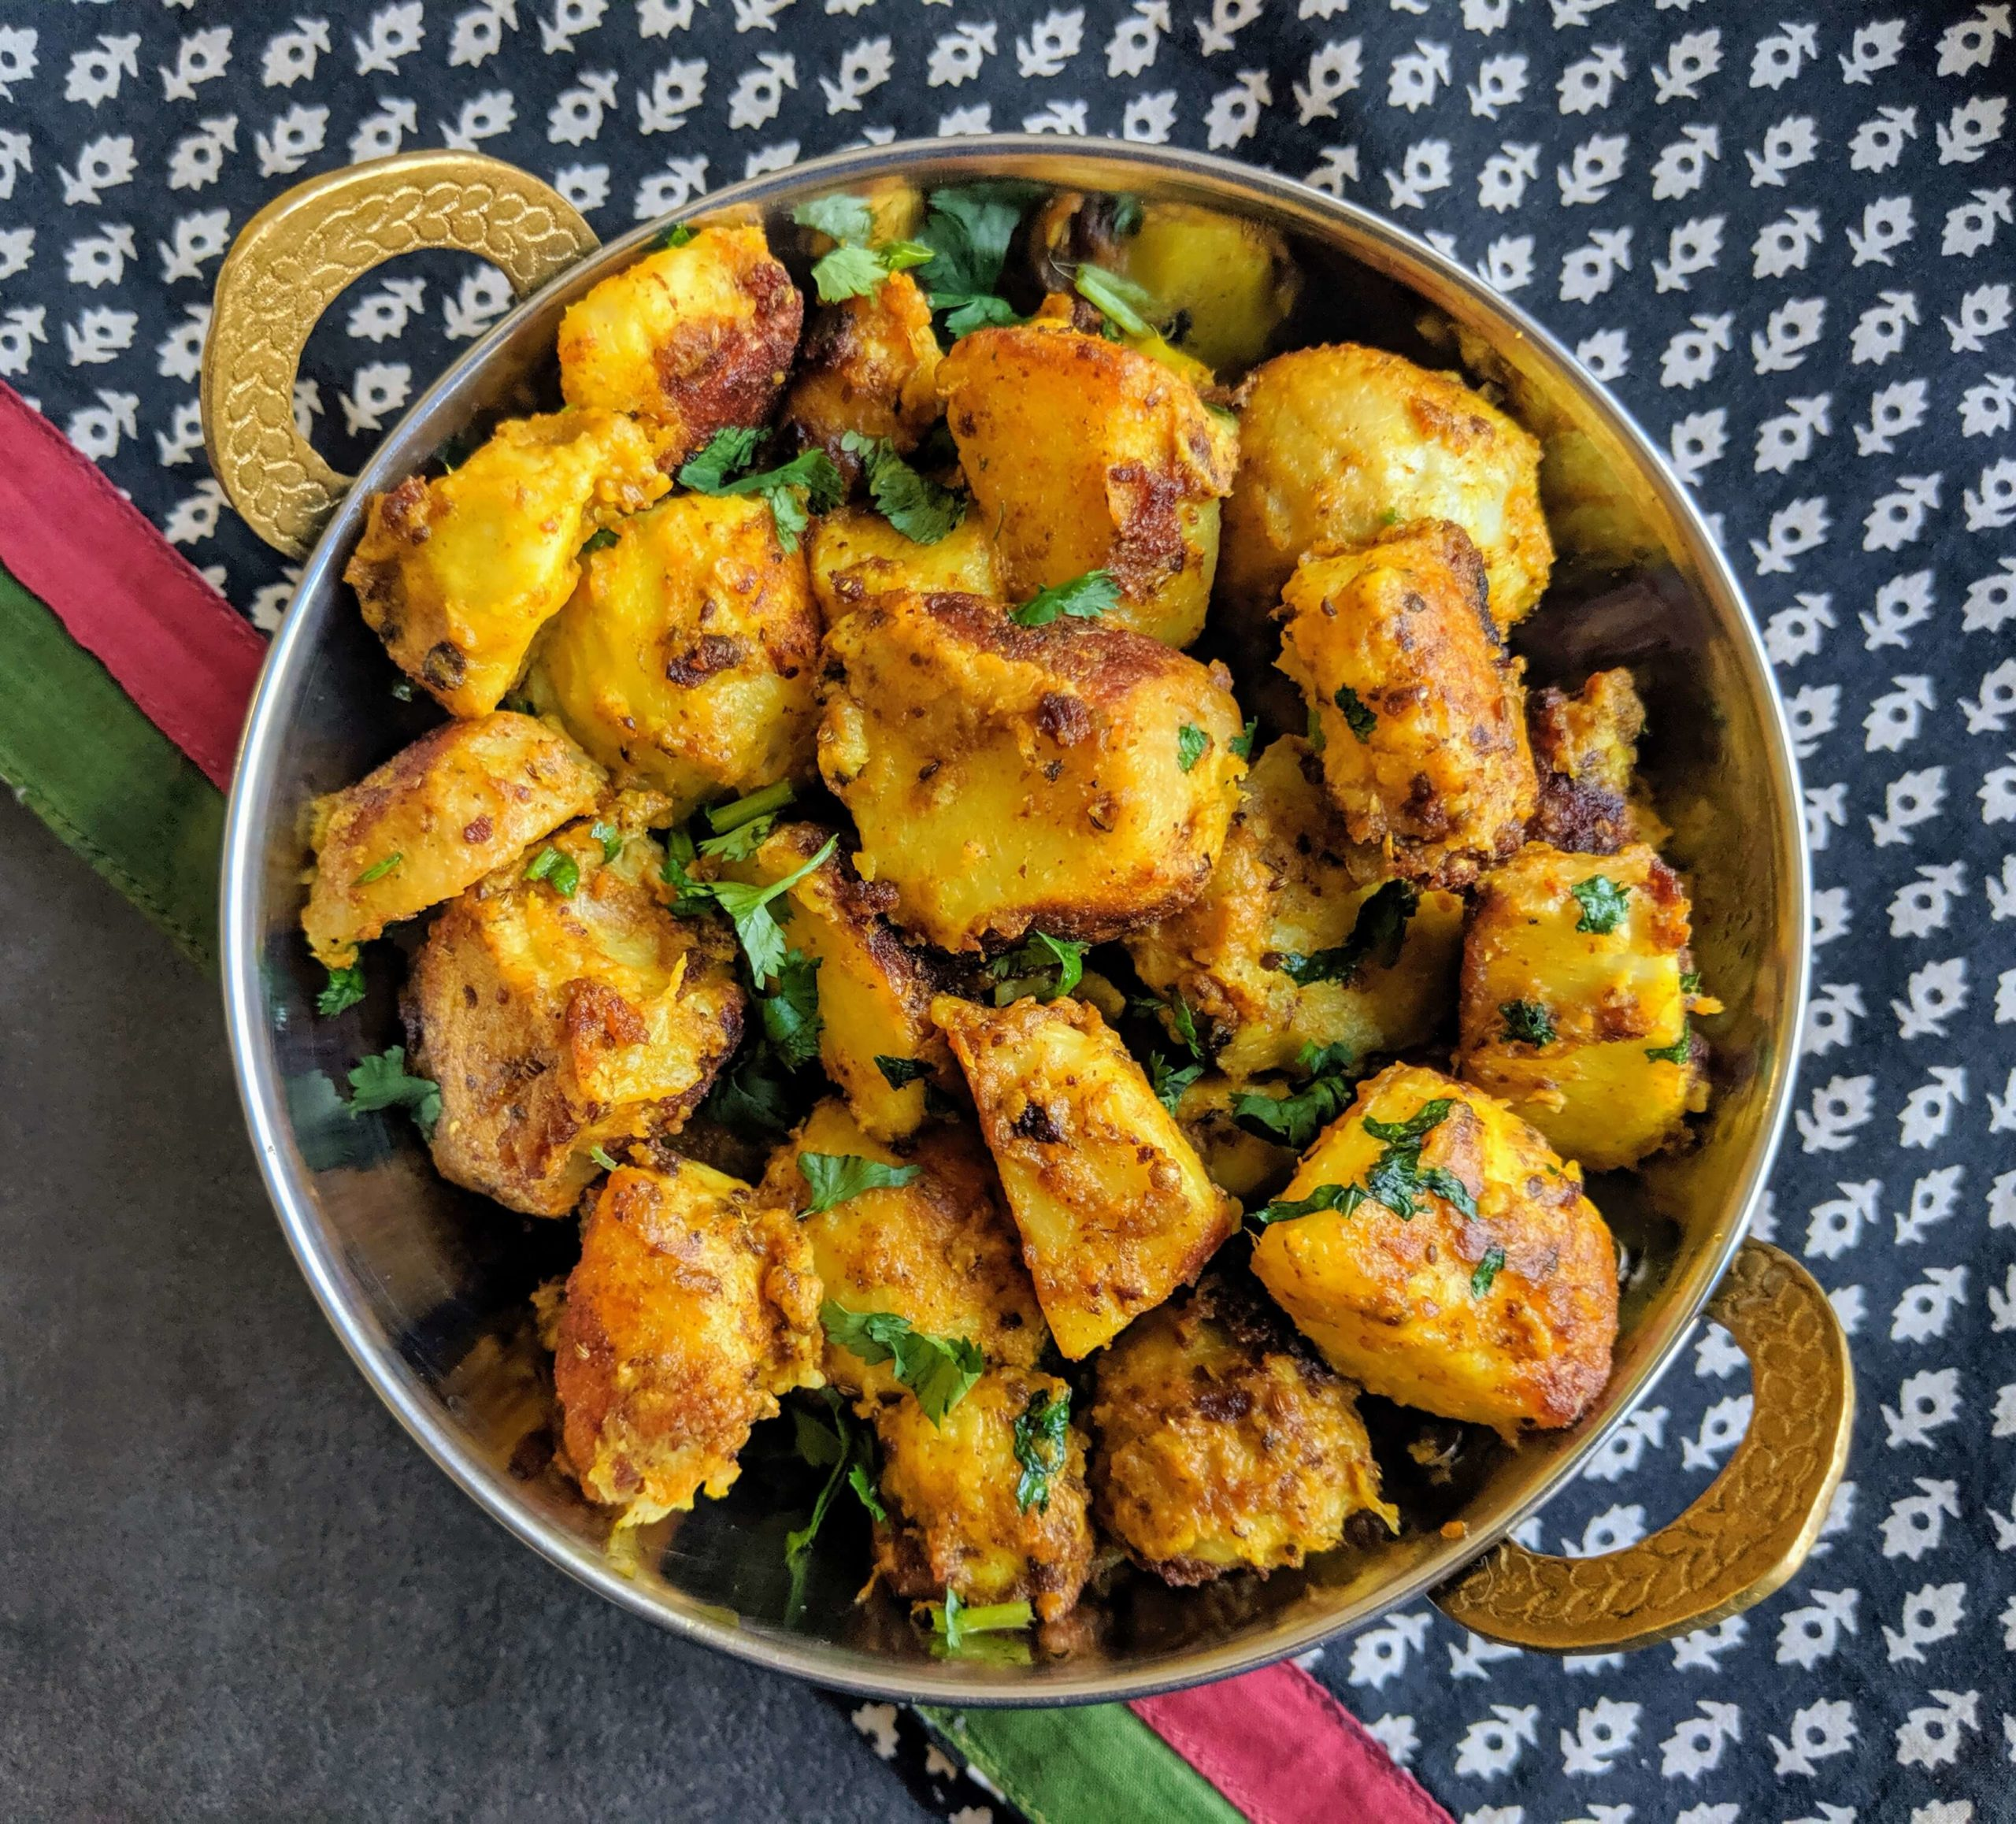 Arbi ki sabji is a crispy & spicy Indian dry curry made by stir frying arbi (taro roots) along with a unique combination of spices.